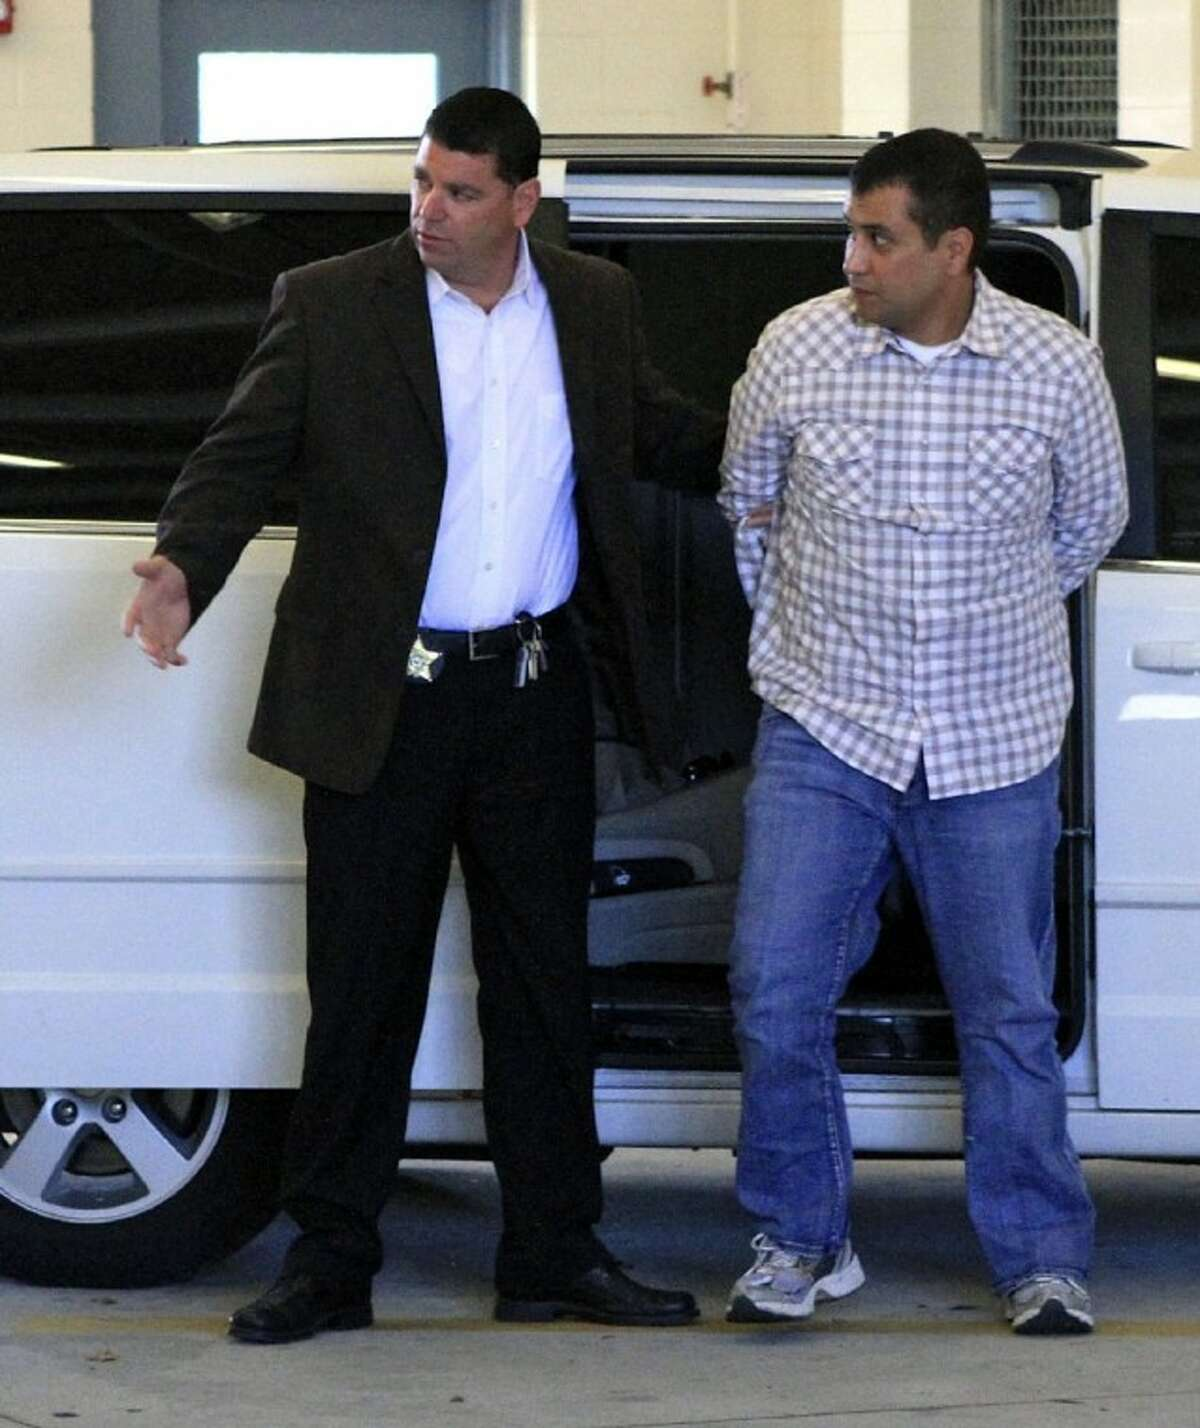 After his bond was revoked, George Zimmerman, right, returns to the John E. Polk Correctional Facility in Sanford, Fla., Sunday. Zimmerman is charged with second-degree murder in the shooting of Trayvon Martin.